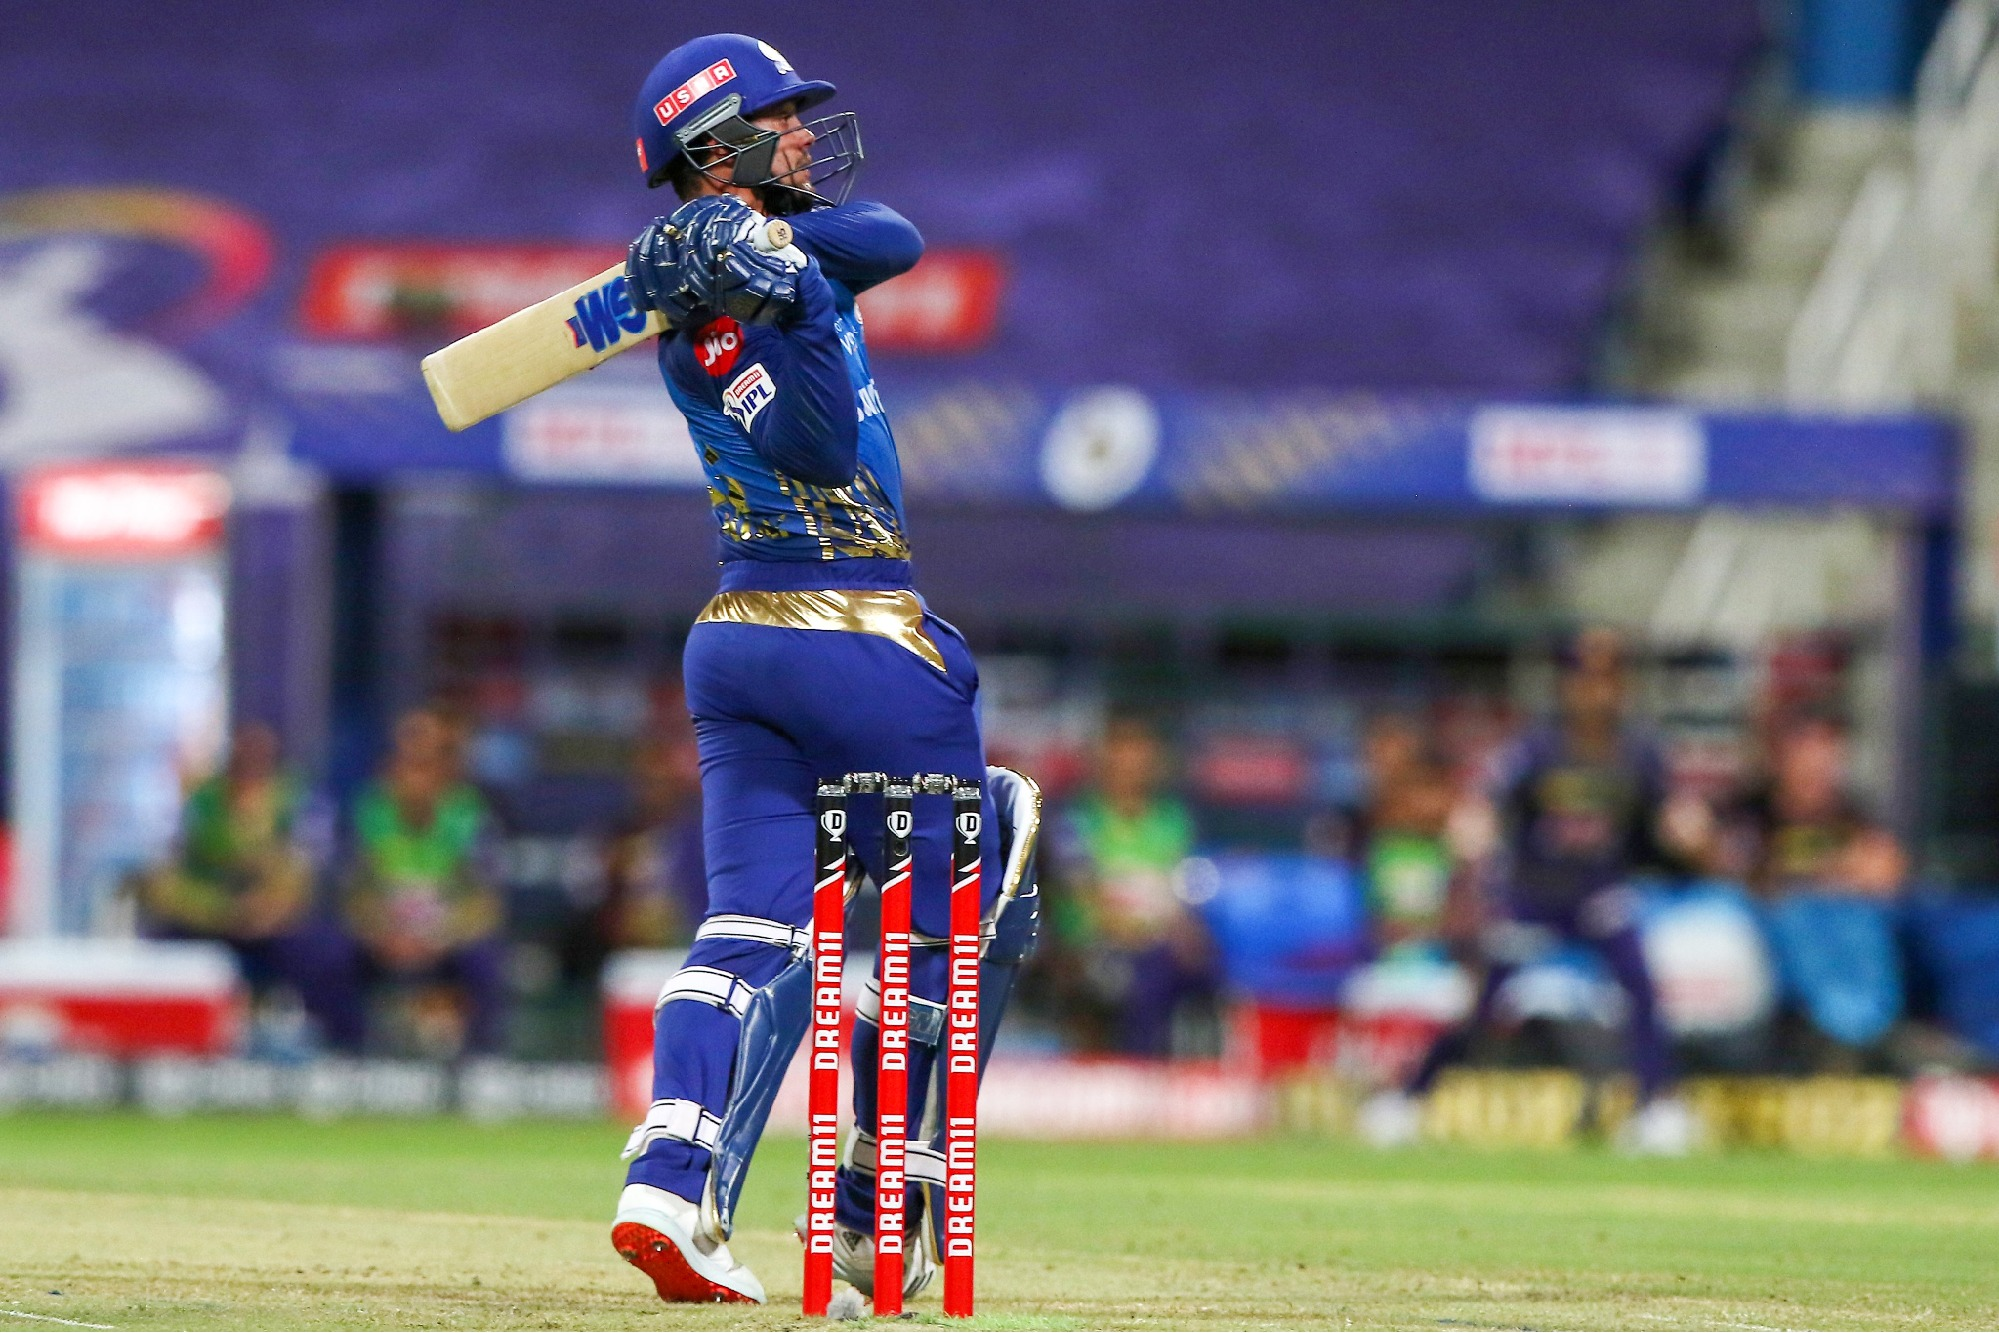 mumbai indians won the match against kolkata knightriders